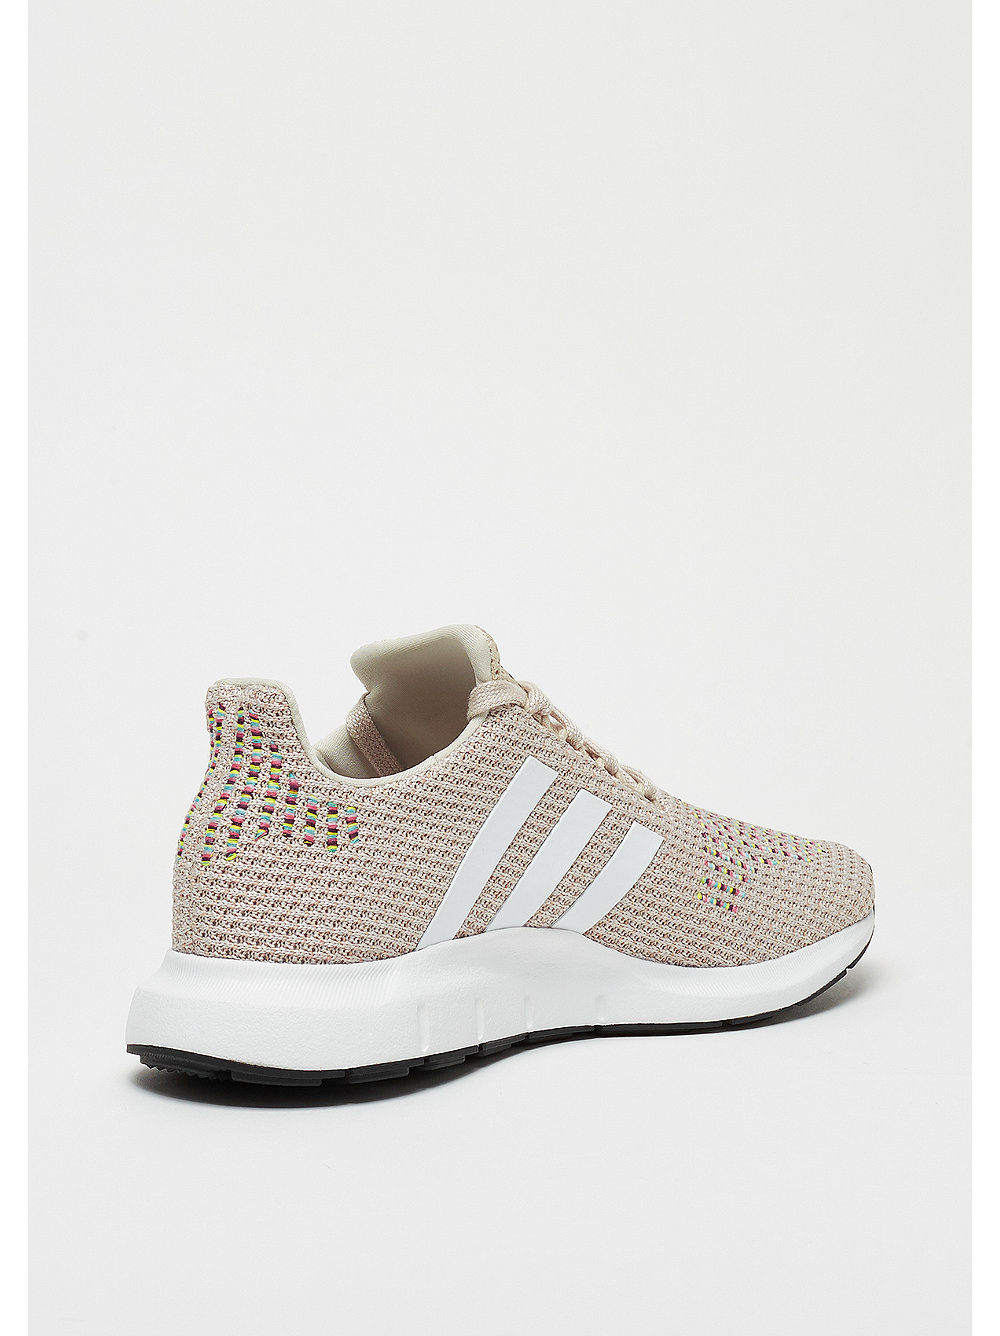 adidas Swift Run clear Brown/ftwr white/core black dIyoxll